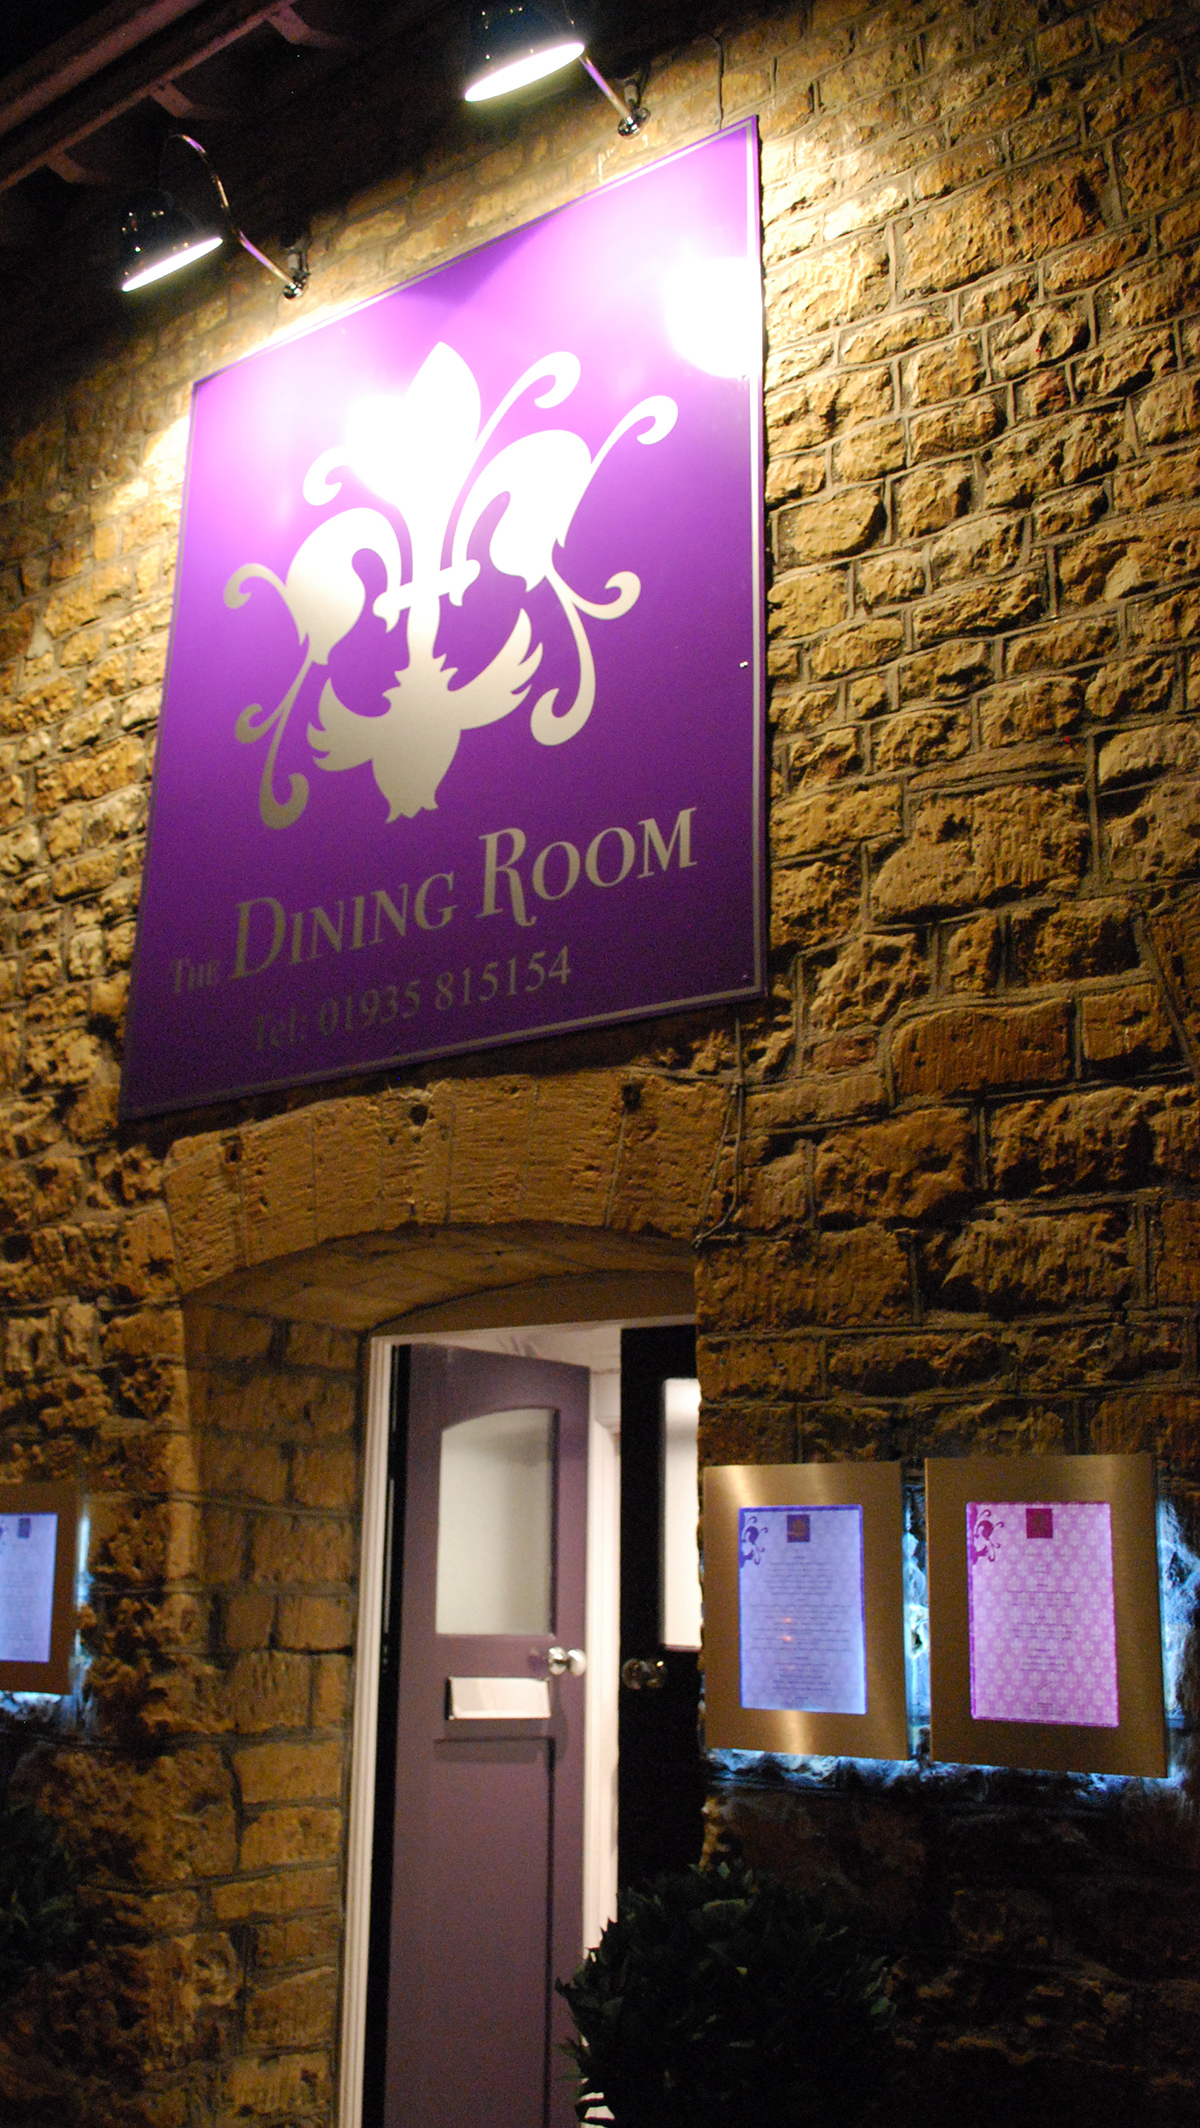 The Dining Room Sherborne Alt Angle Exterior Signage Design by Digiwool